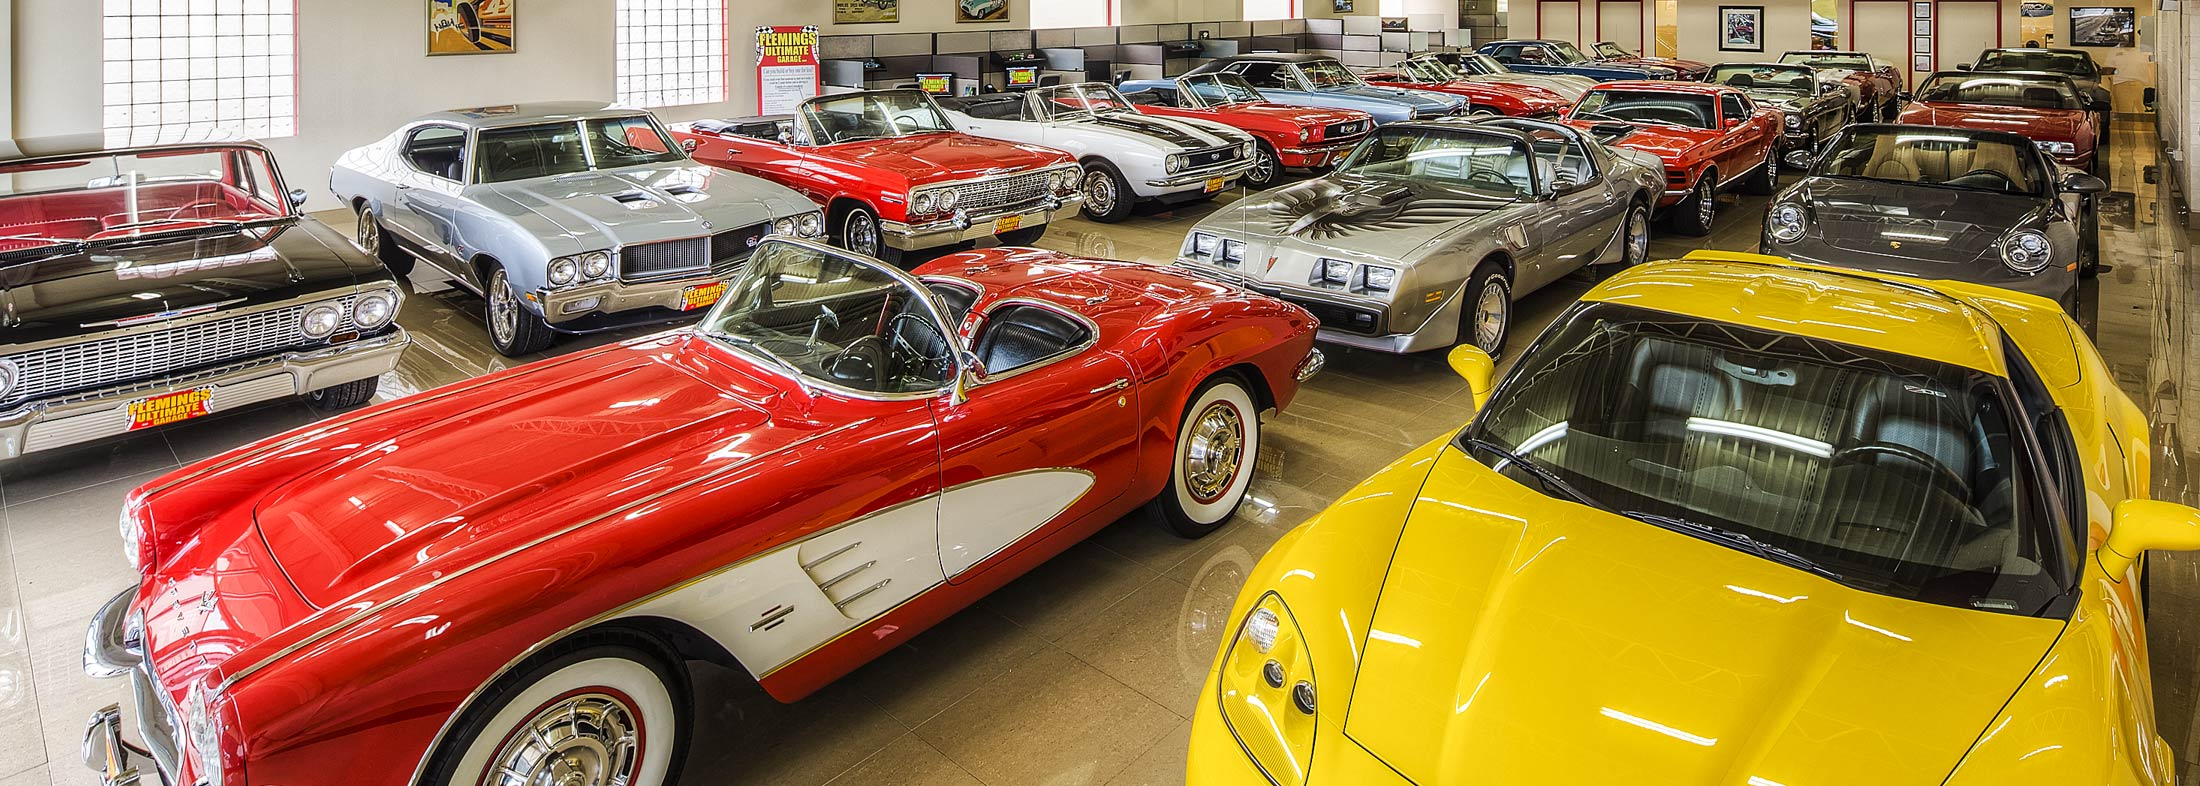 Home | Flemings Ultimate Garage Classic, Muscle, Exotic Cars for ...